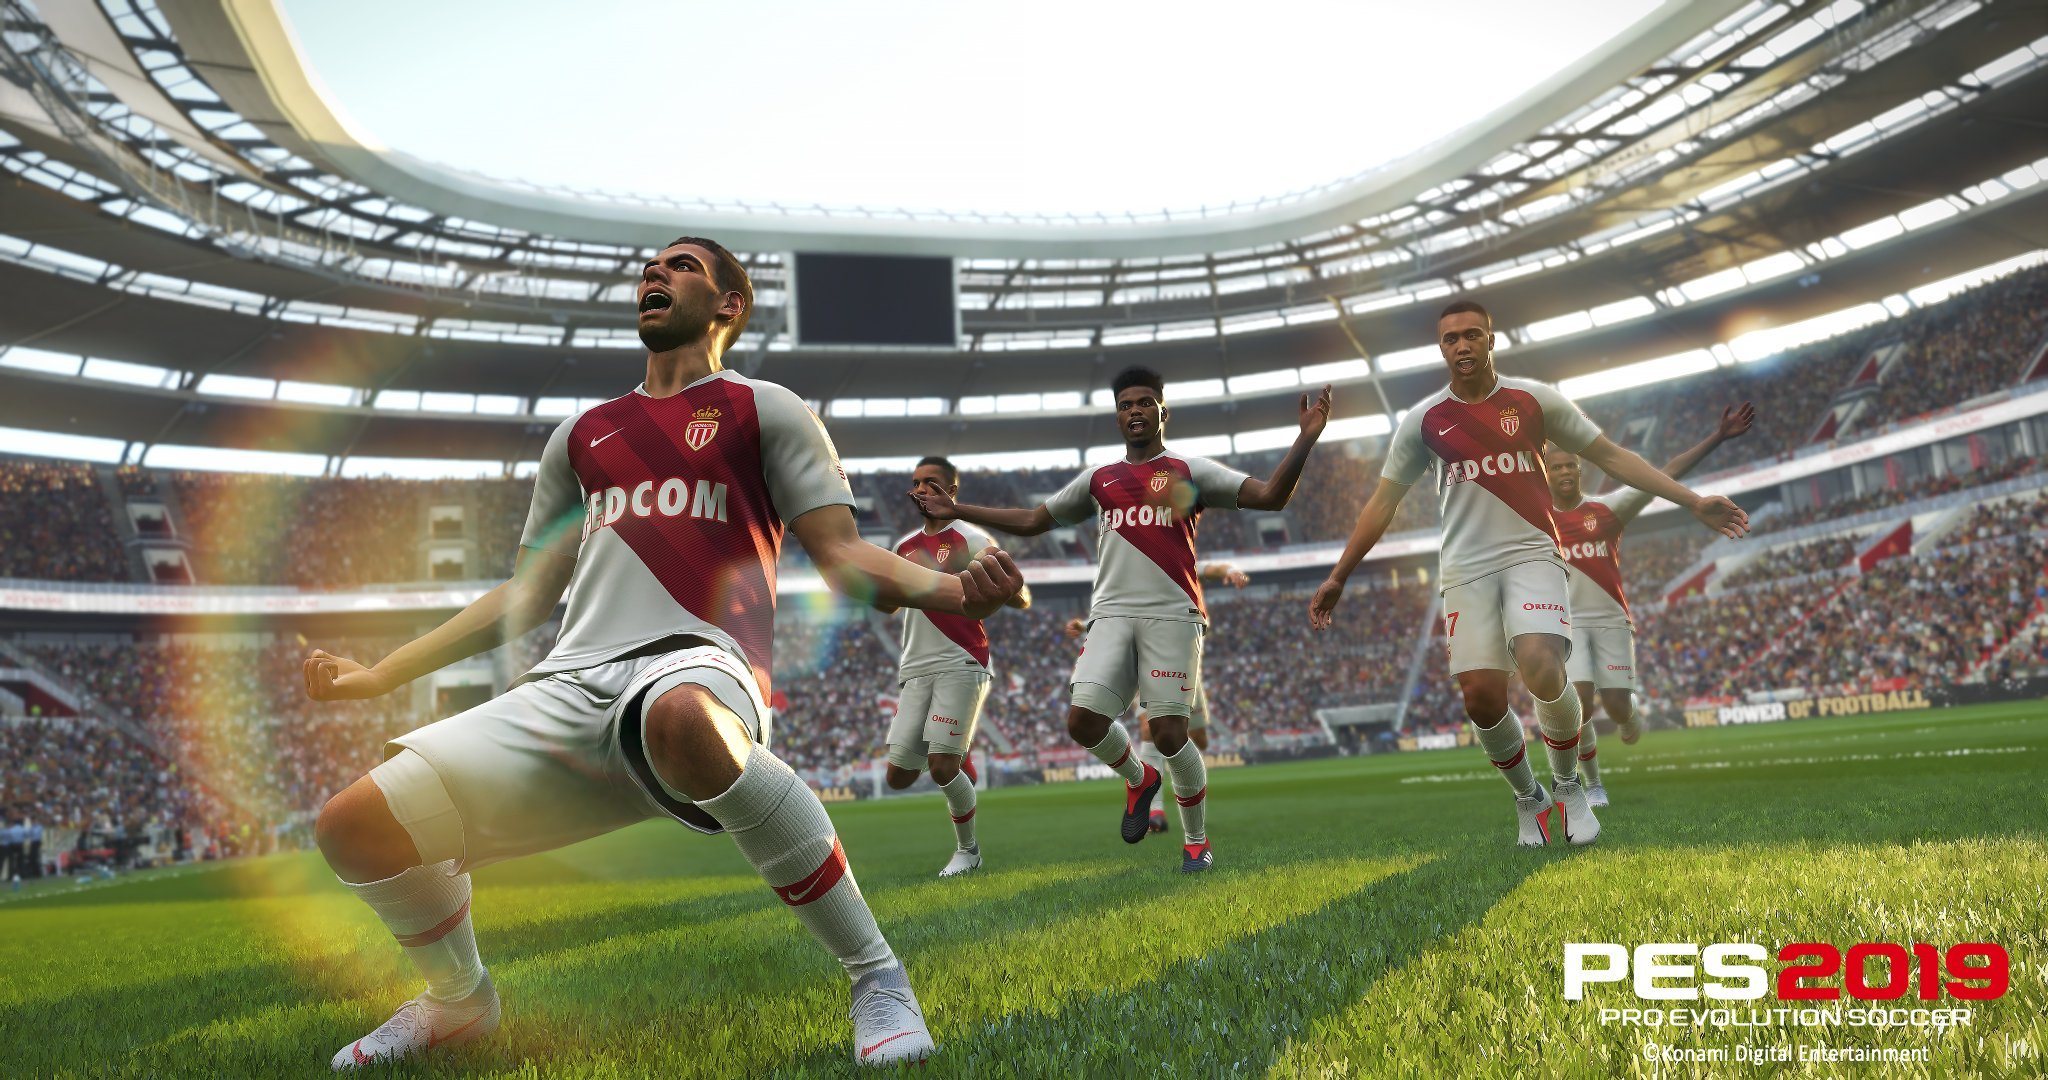 AS Monaco signs two new PES players - Pro Evolution Soccer 2019